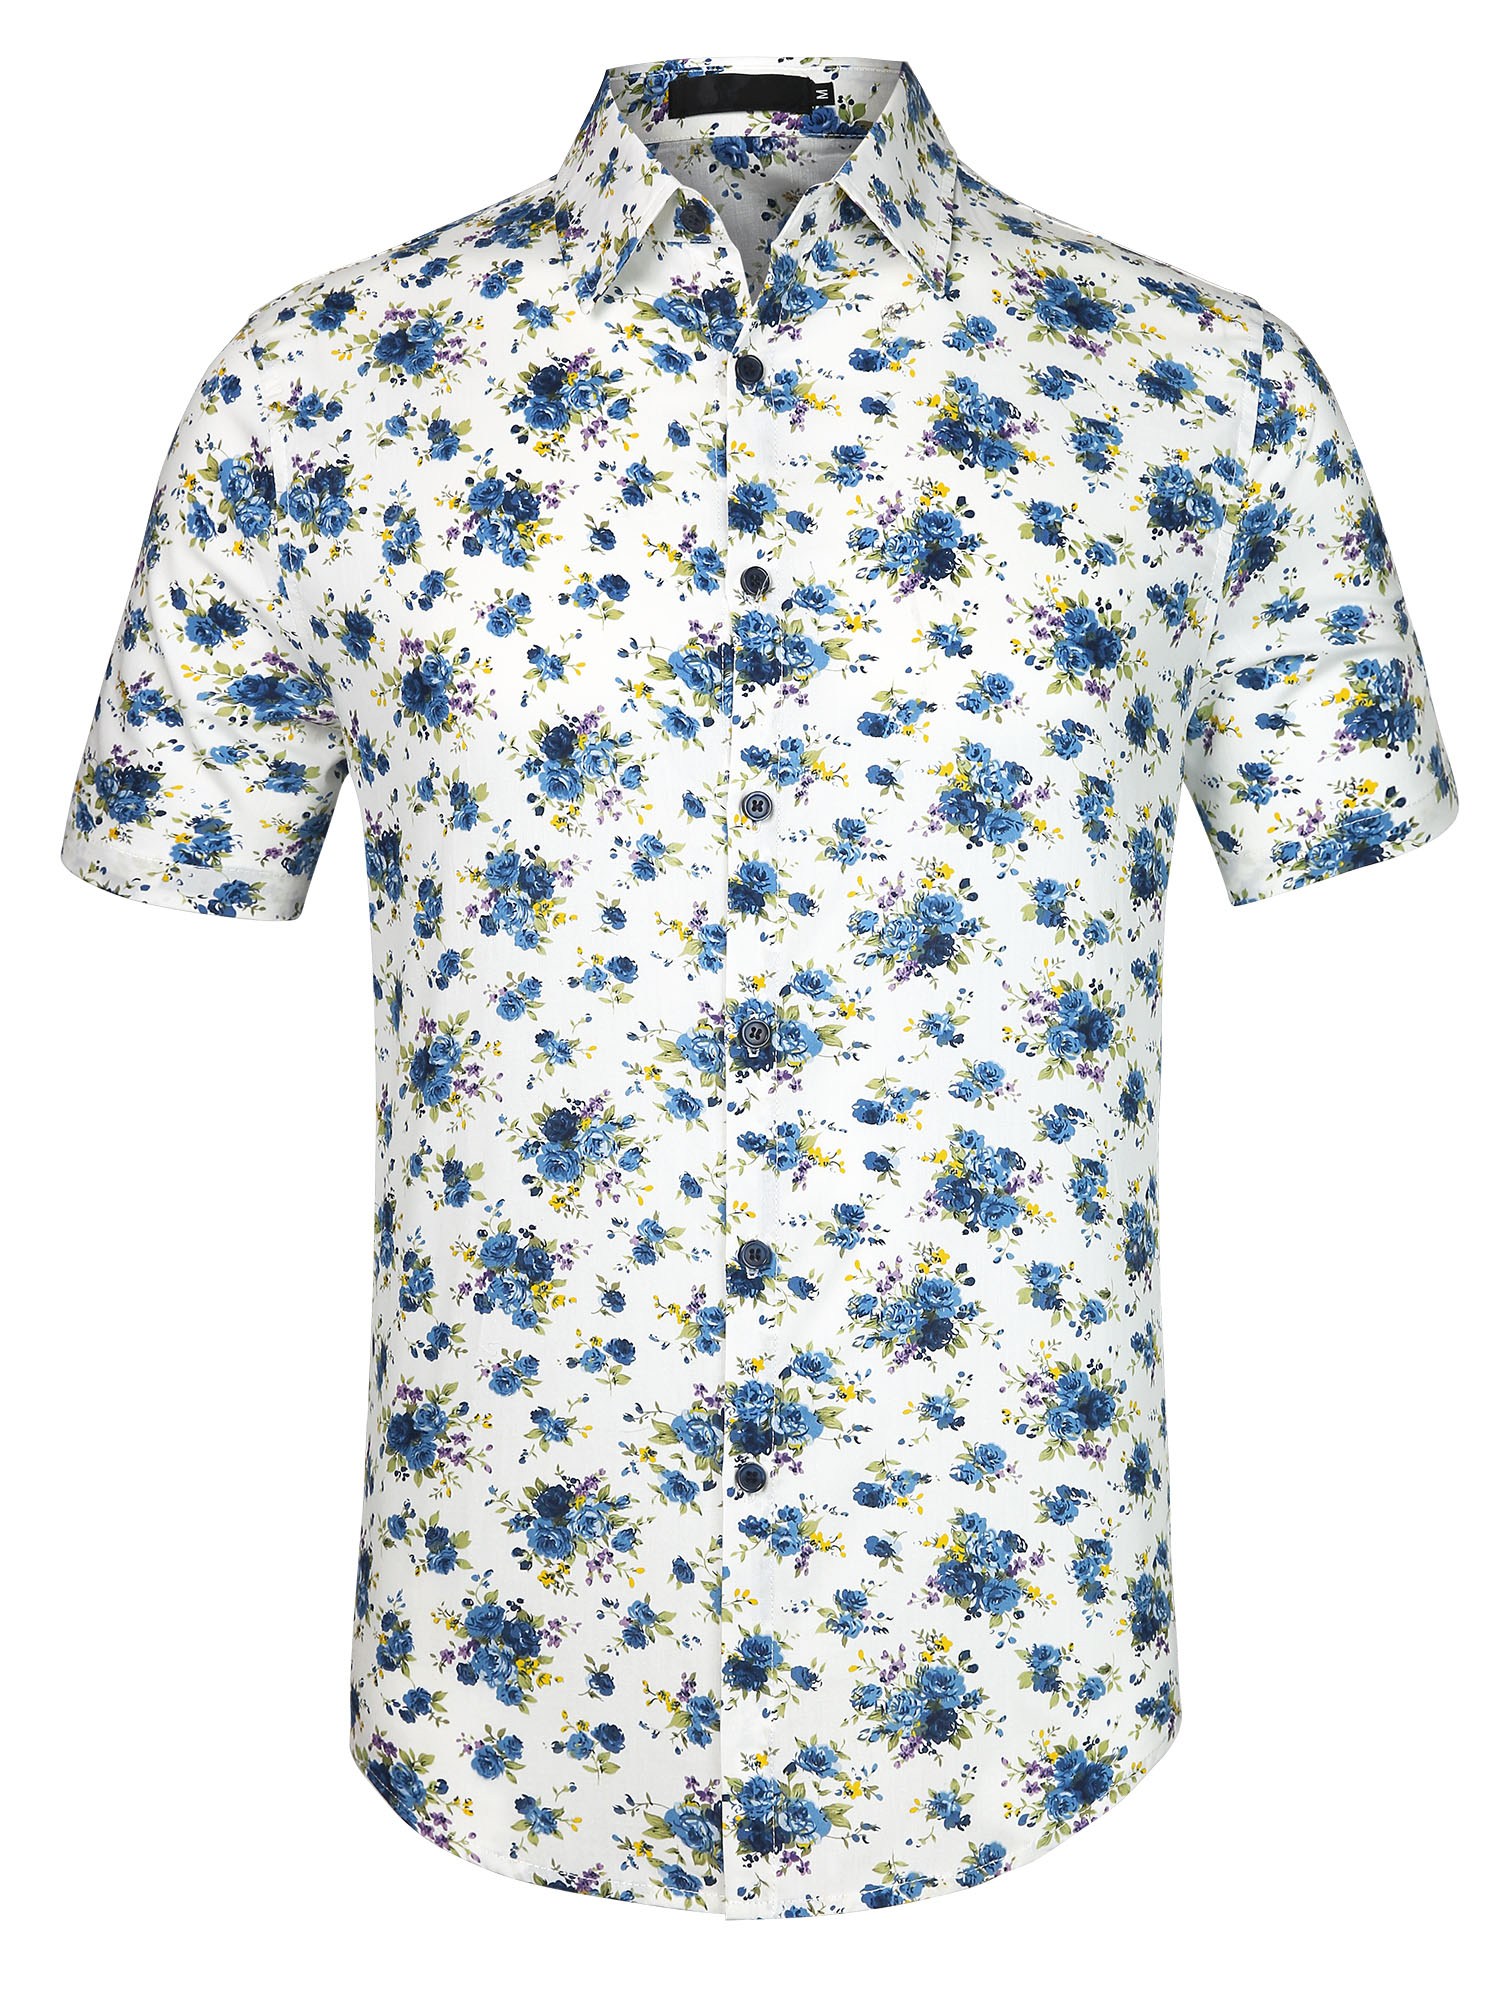 Men Floral Prints Short Sleeves Casual Shirt Off White Small